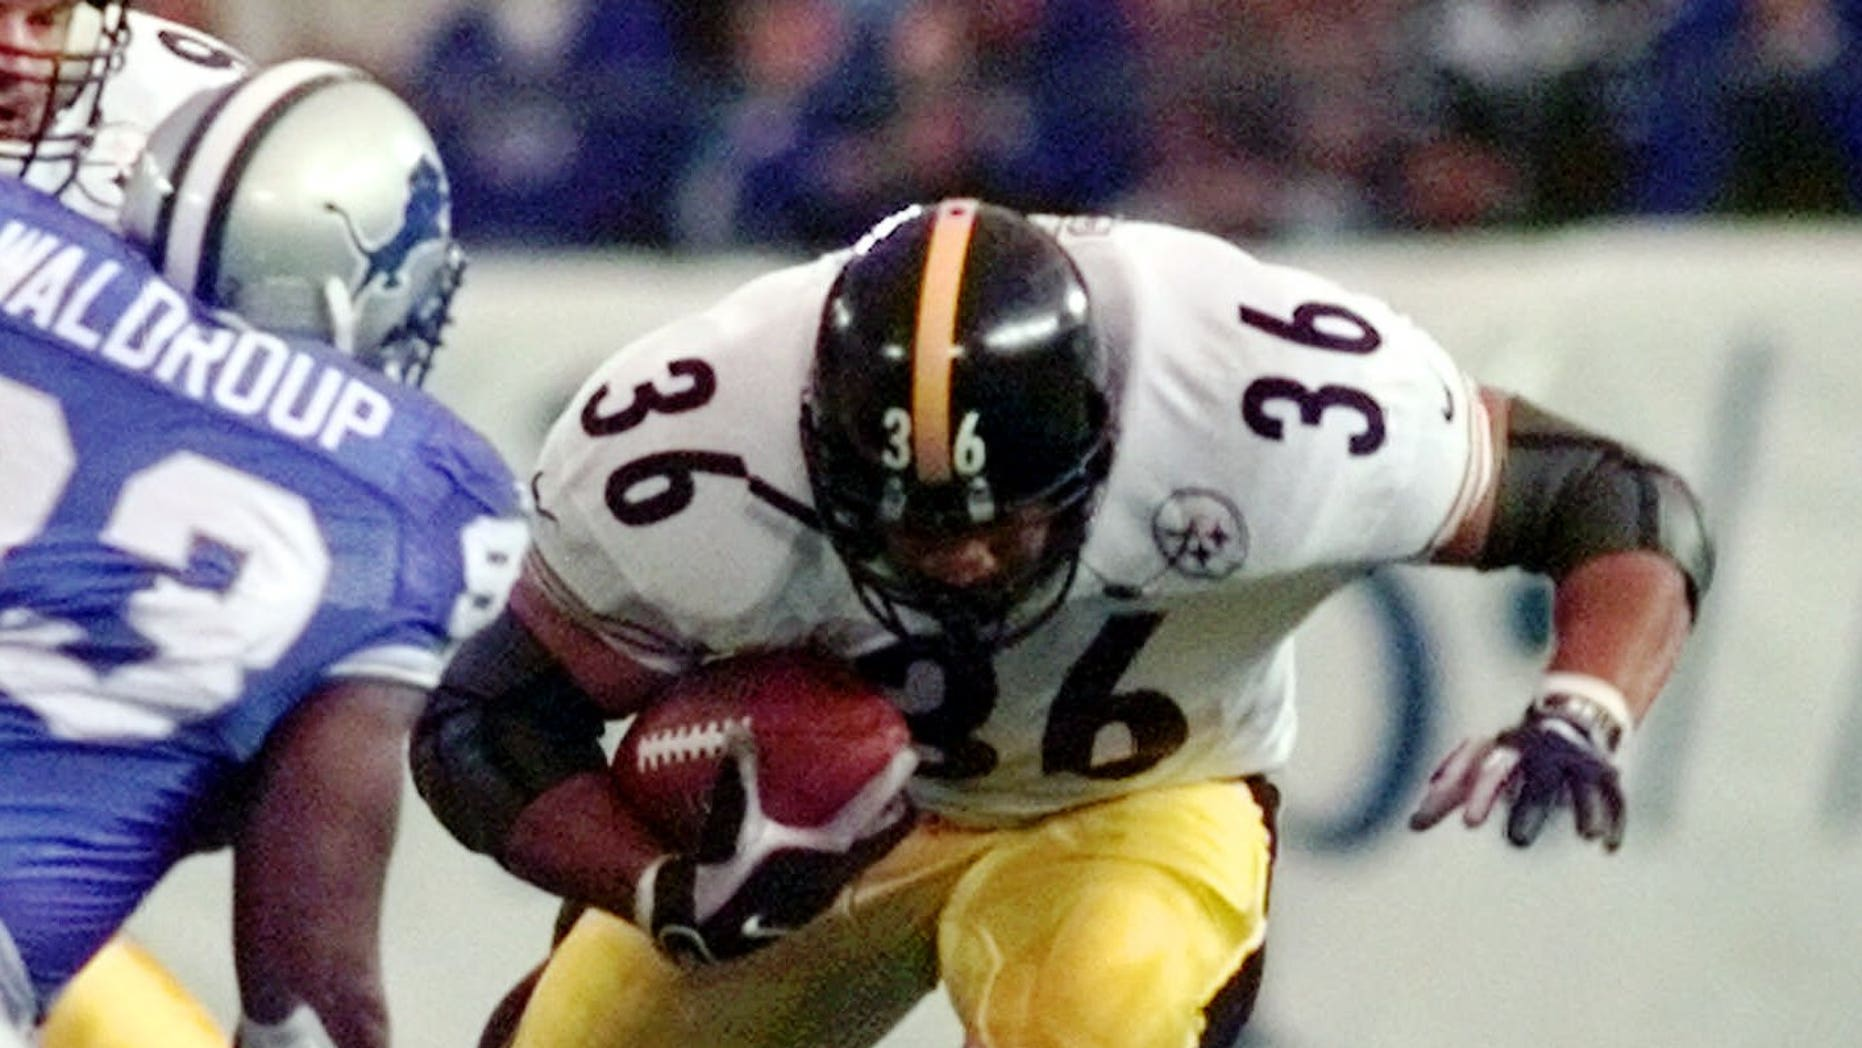 Pittsburgh Steelers running back Jerome Bettis breaks through a hole during the second quarter against the defense of the Detroit Lions in Pontiac, Mich., Thursday, Nov. 26, 1998. (AP Photo/Duane Burleson)